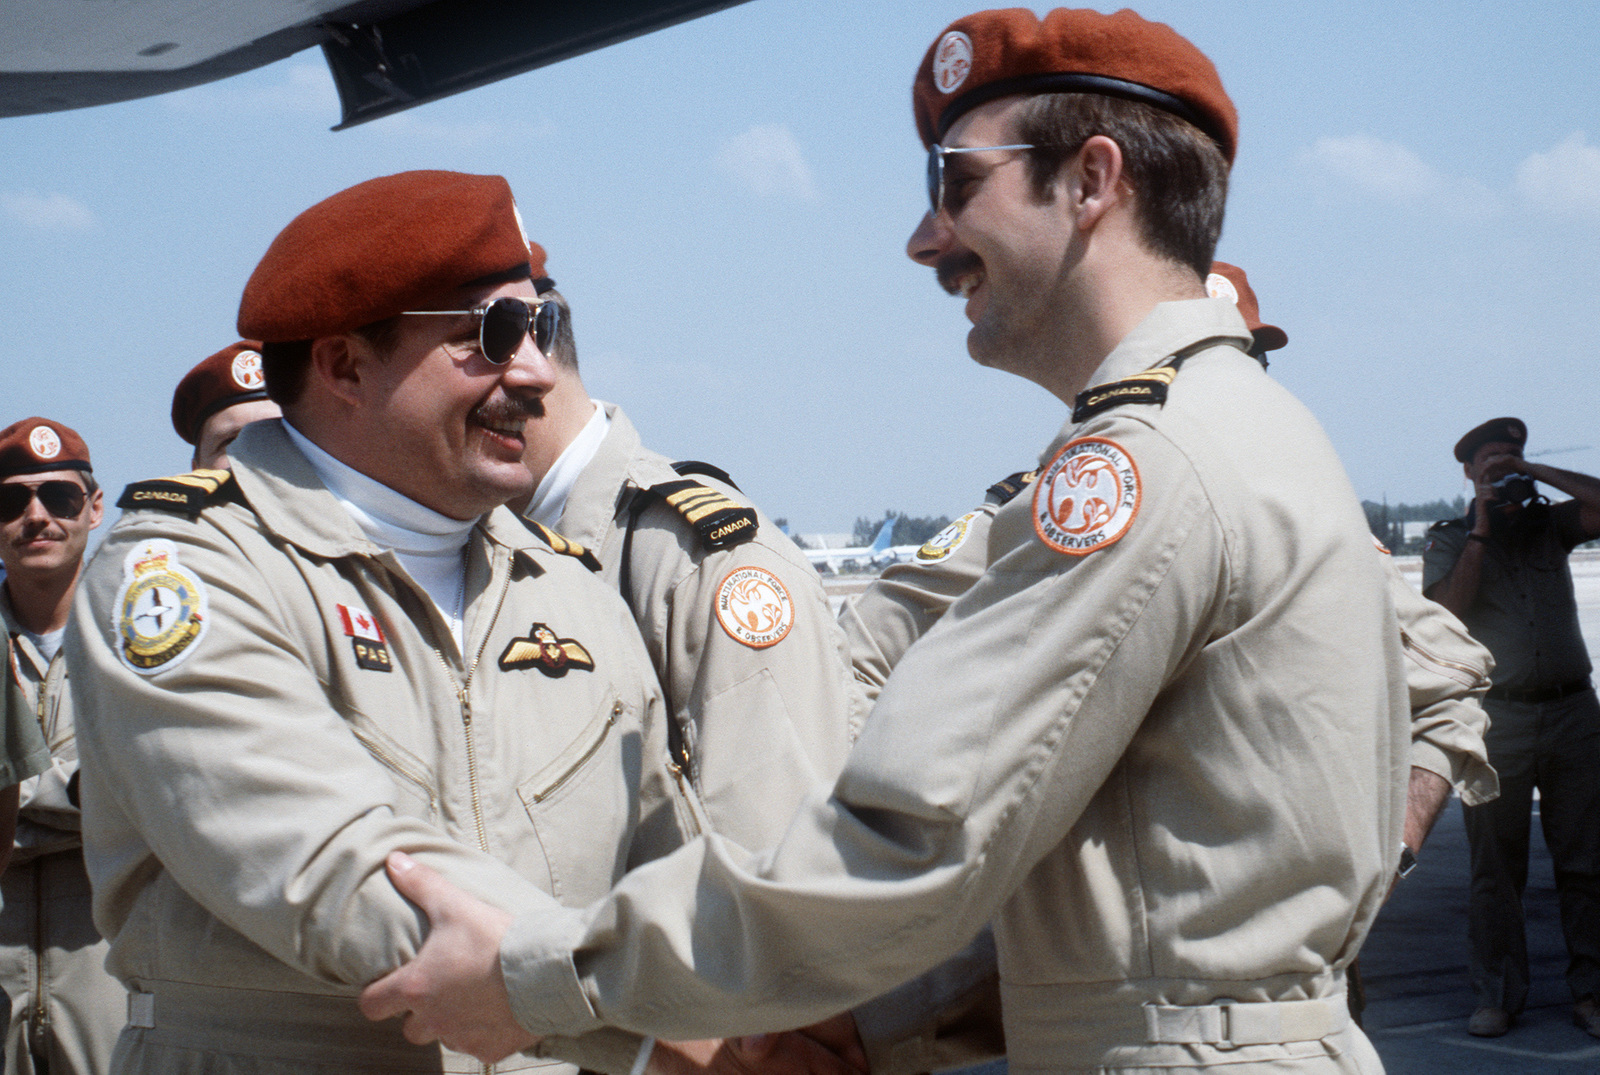 A member of a Canadian advance team welcomes another Canadian military officer to Ben Gurion Airport upon his arrival aboard a 60th Military Airlift Wing C-5A Galaxy.  The aircraft airlifted elements of a Canadian helicopter squadron from Edmonton, Canada, to Israel for duty with Multinational Force and Observers